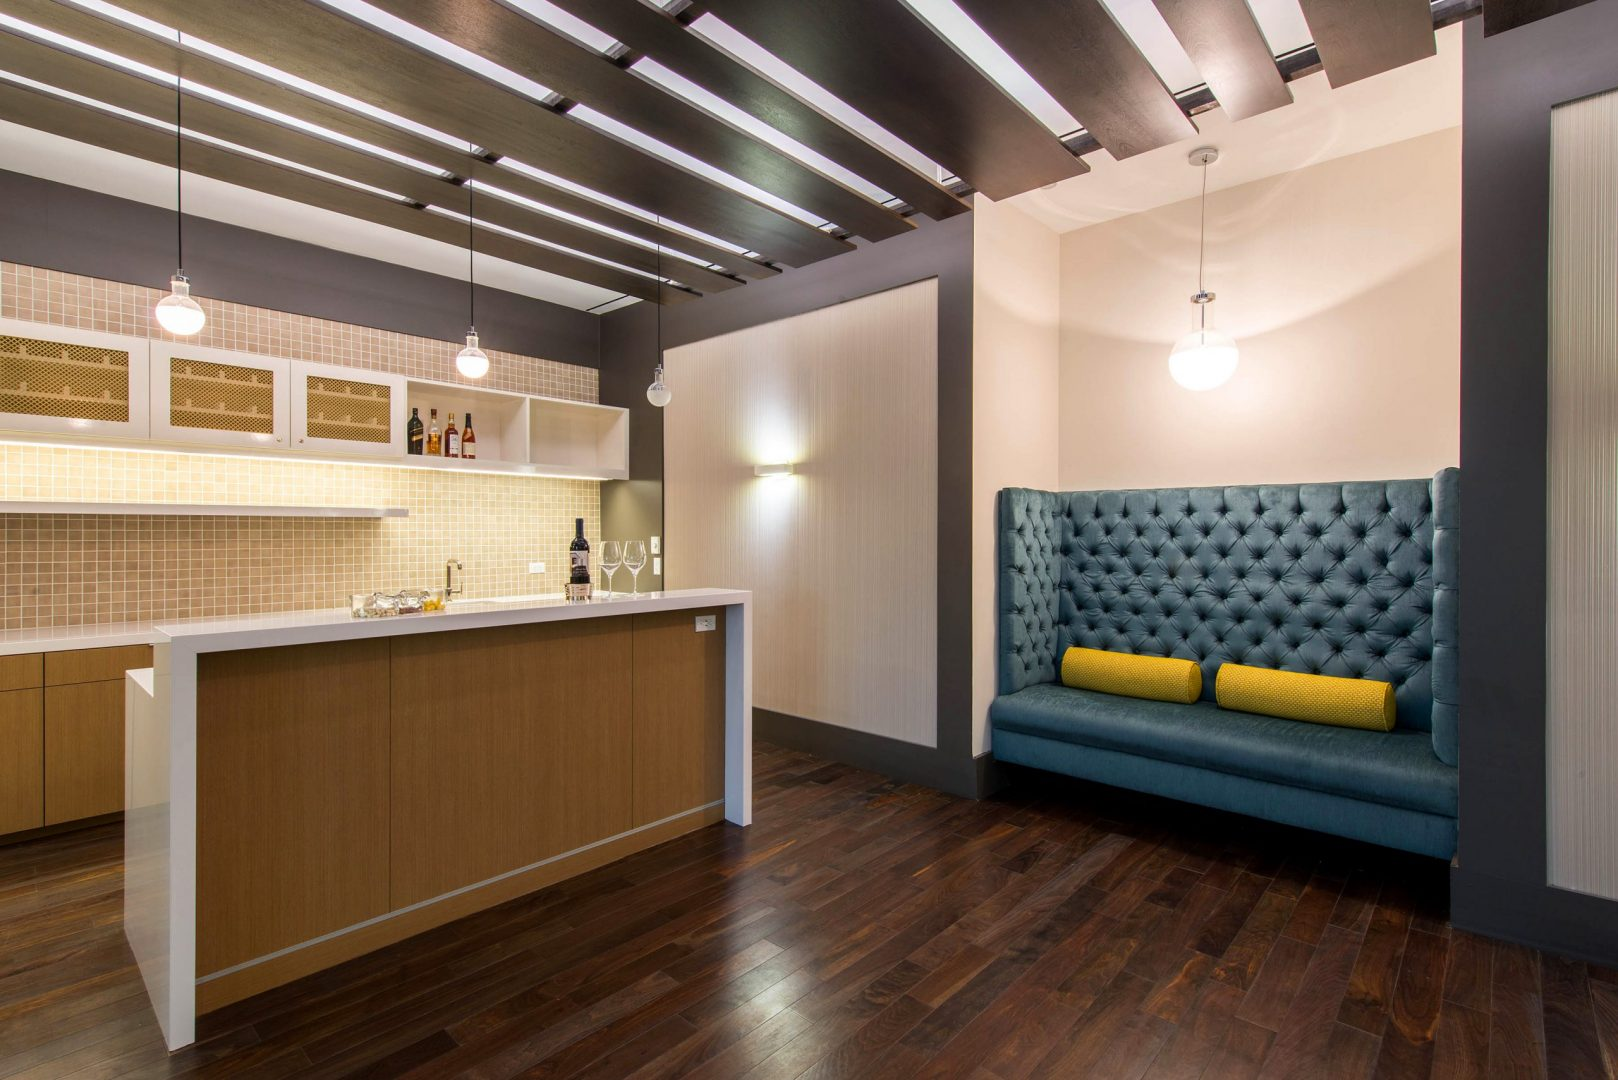 Corporate Law Interior Design Heard Robins Cloud and Black Breakroom Island Banquette